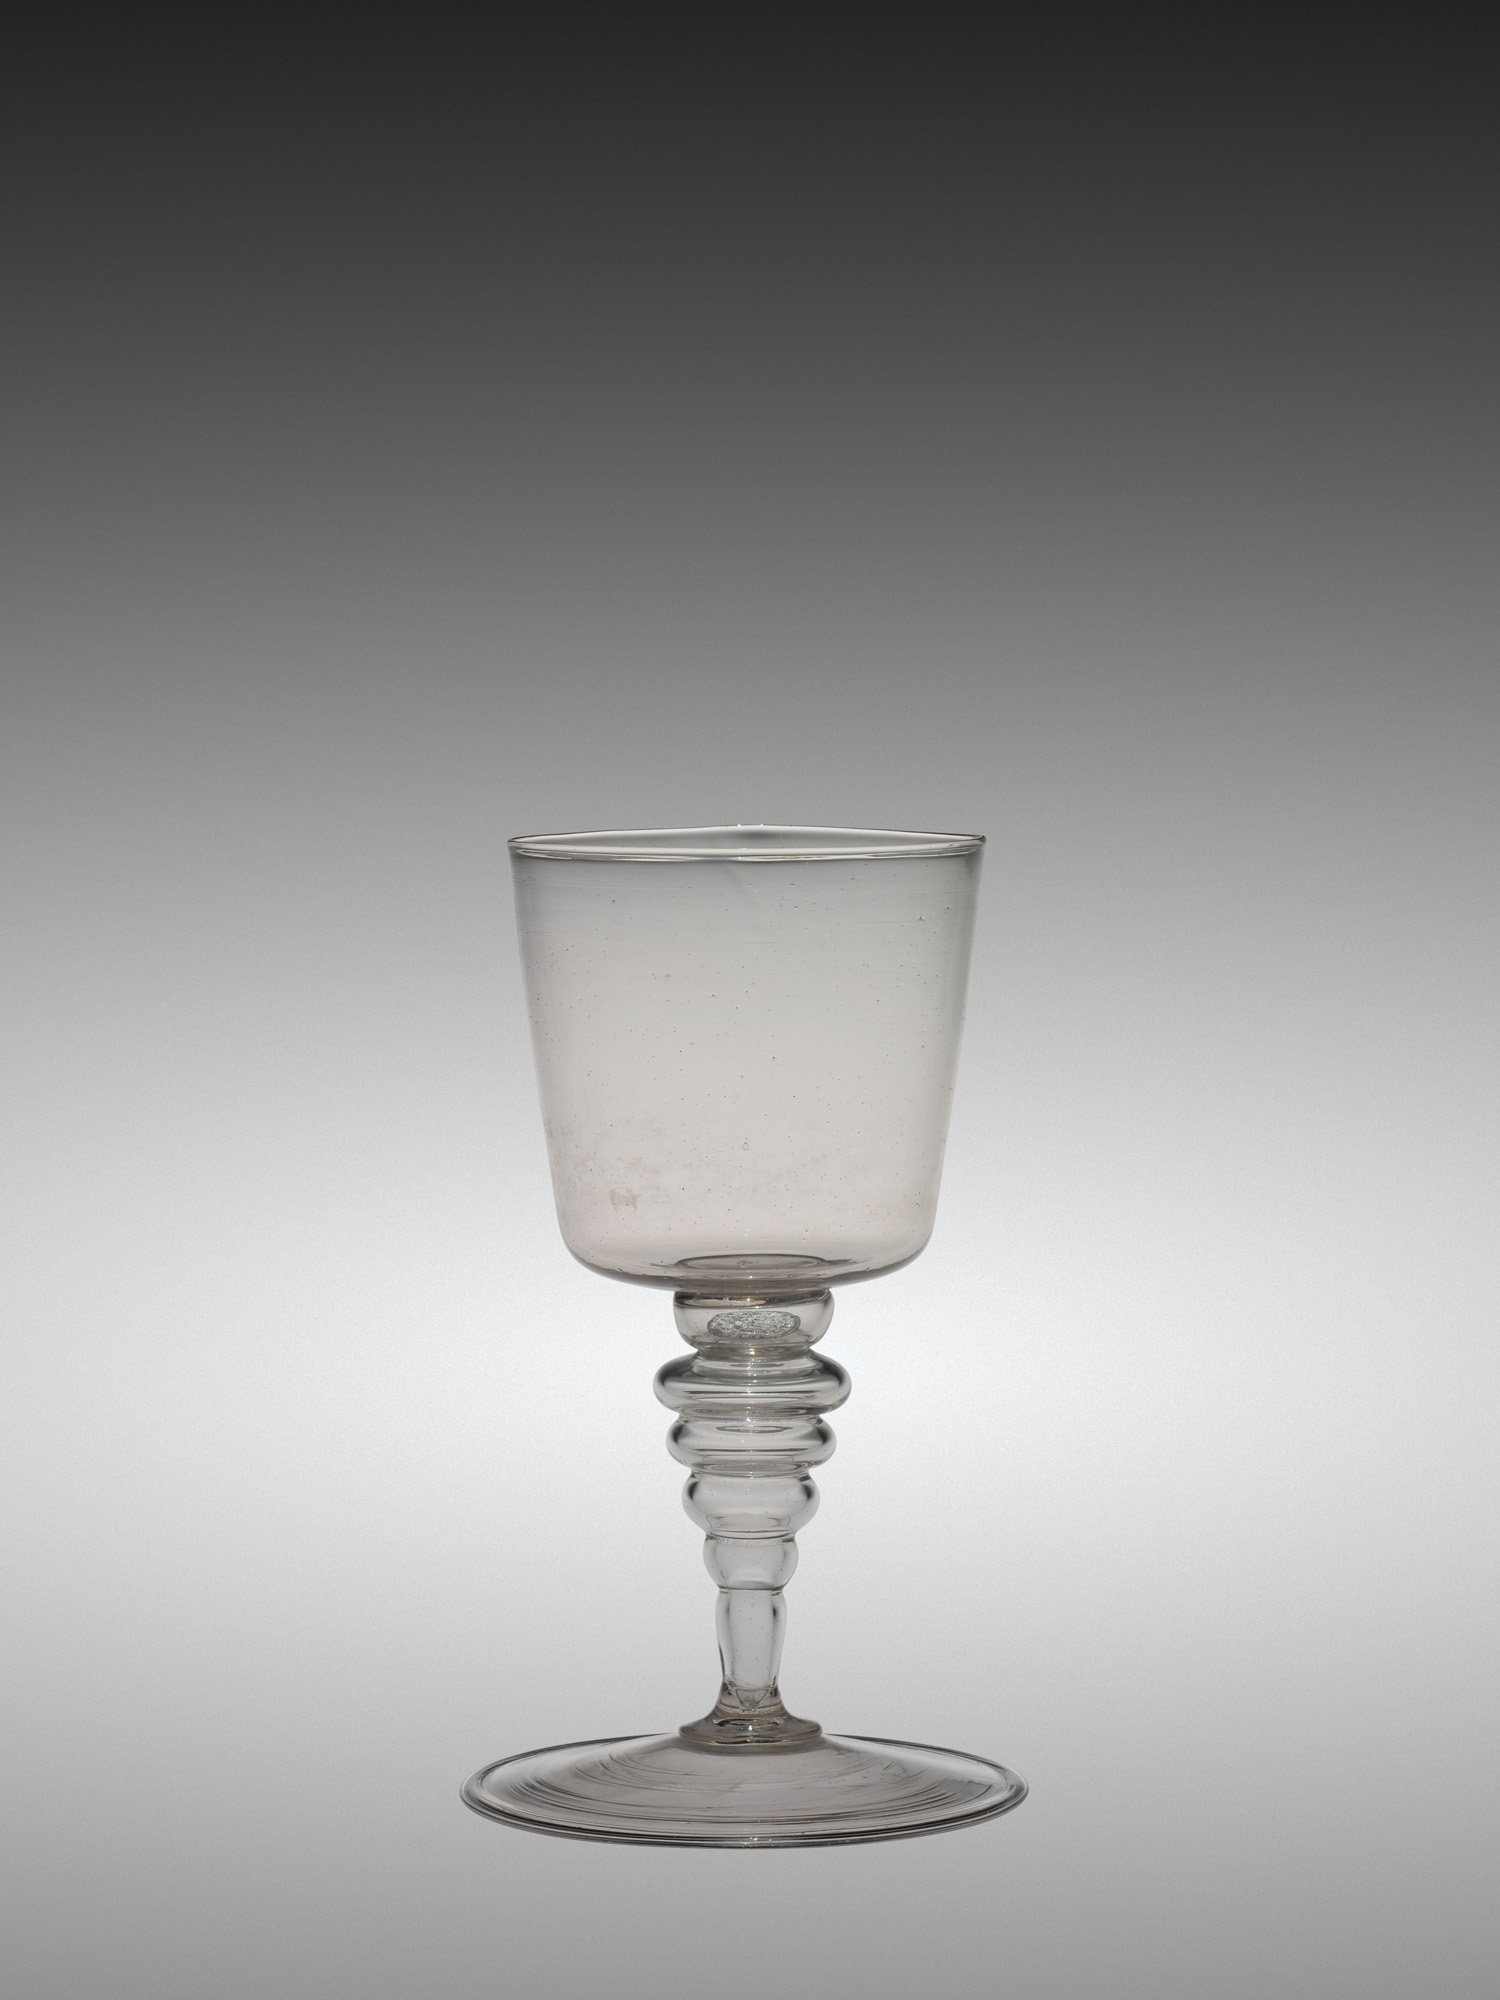 Wineglass with Coin in Stem